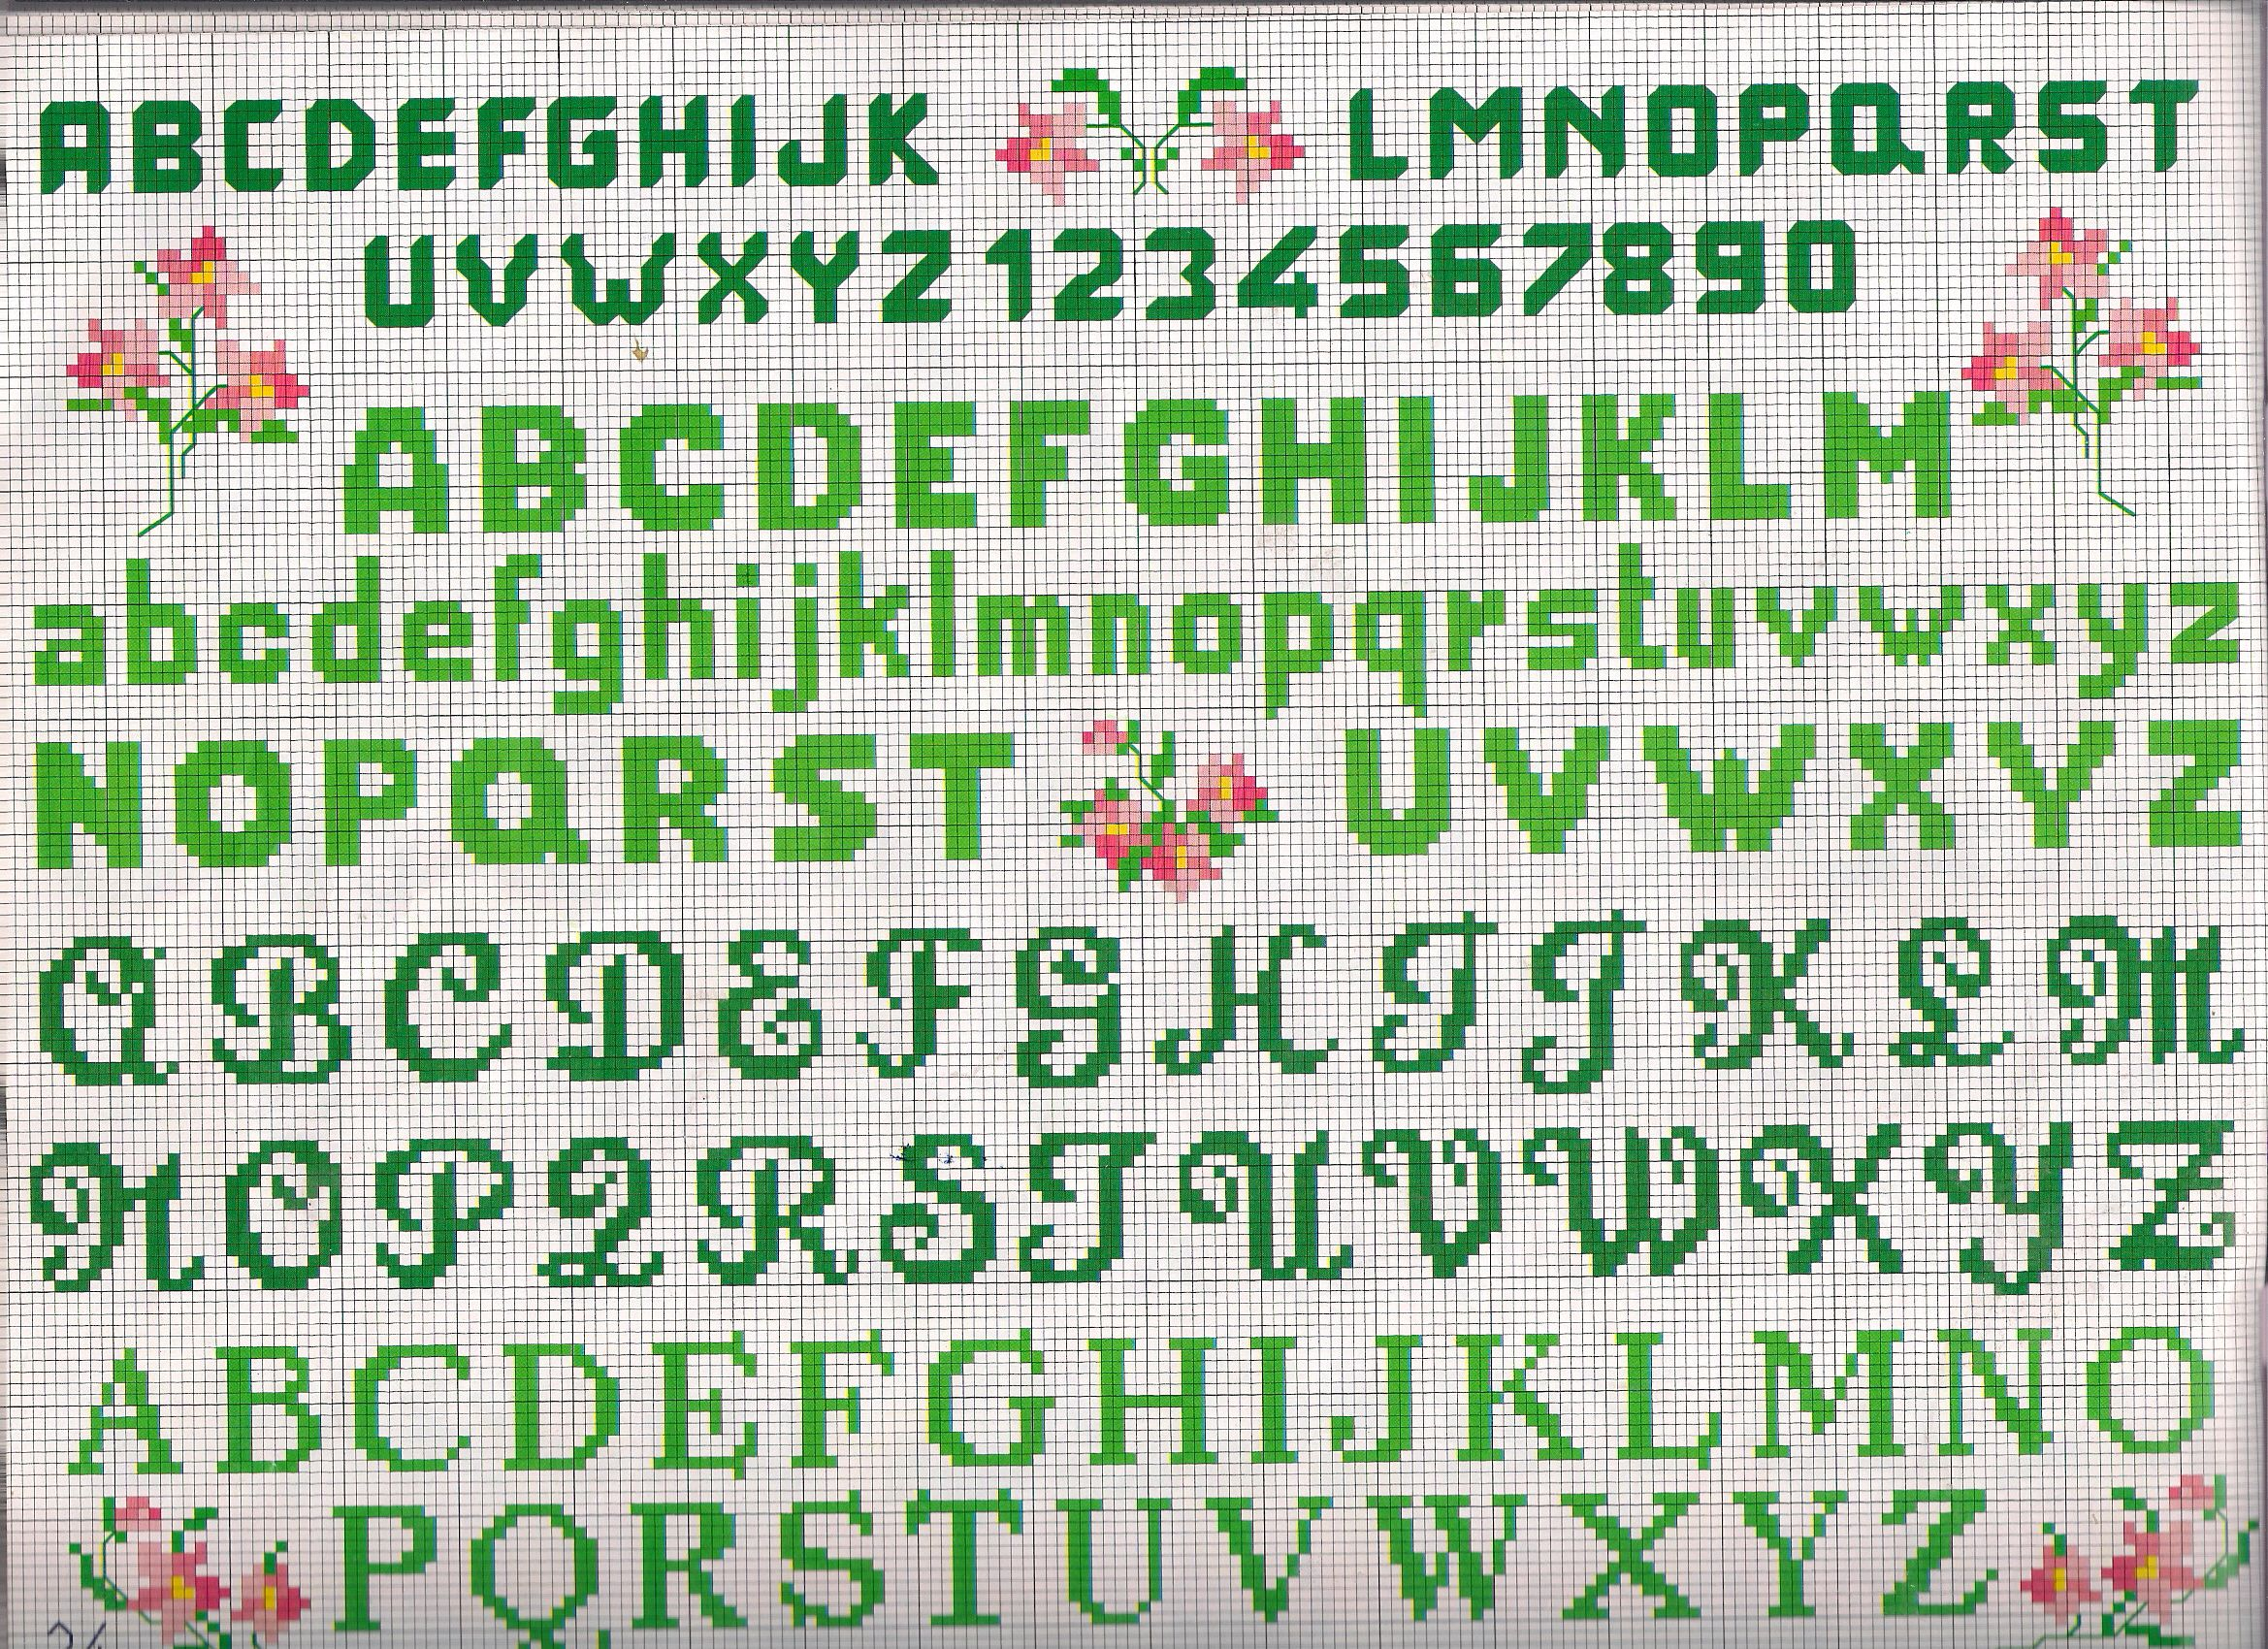 Lettere e numeri piccoli needlepoint cross stitch for Punto croce schemi alfabeto